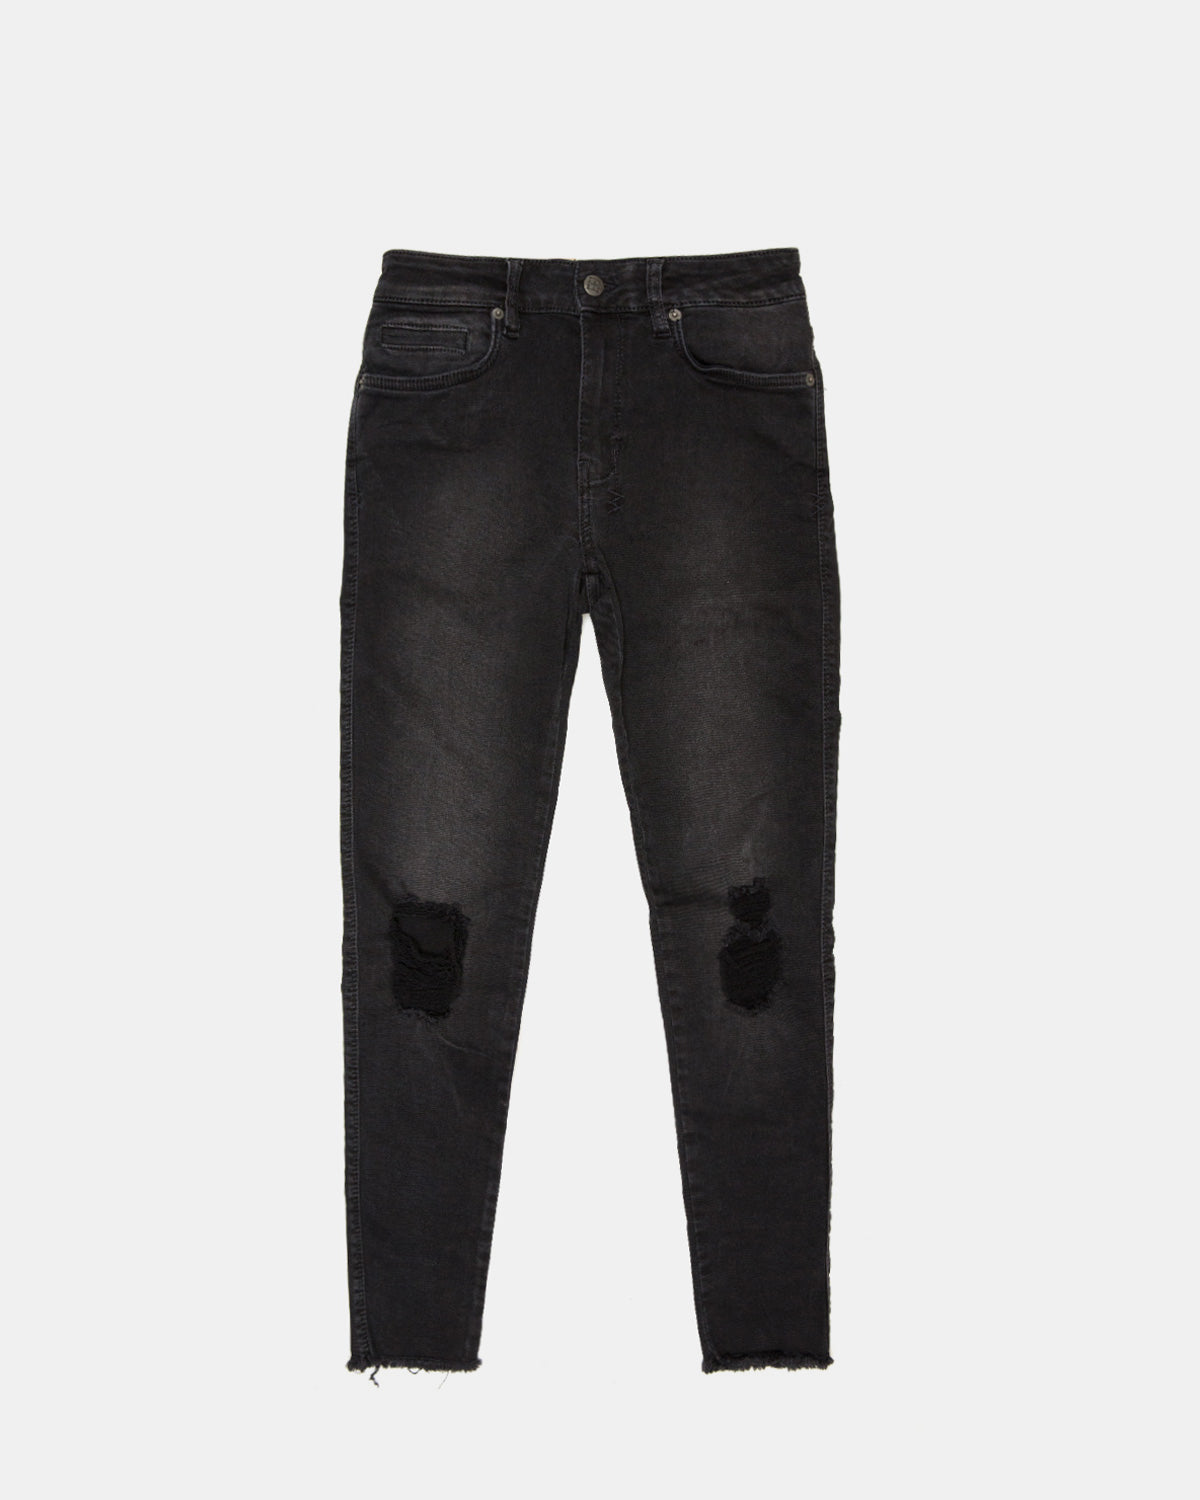 Ksubi - Women's Spray On Rebel Jeans (Black)